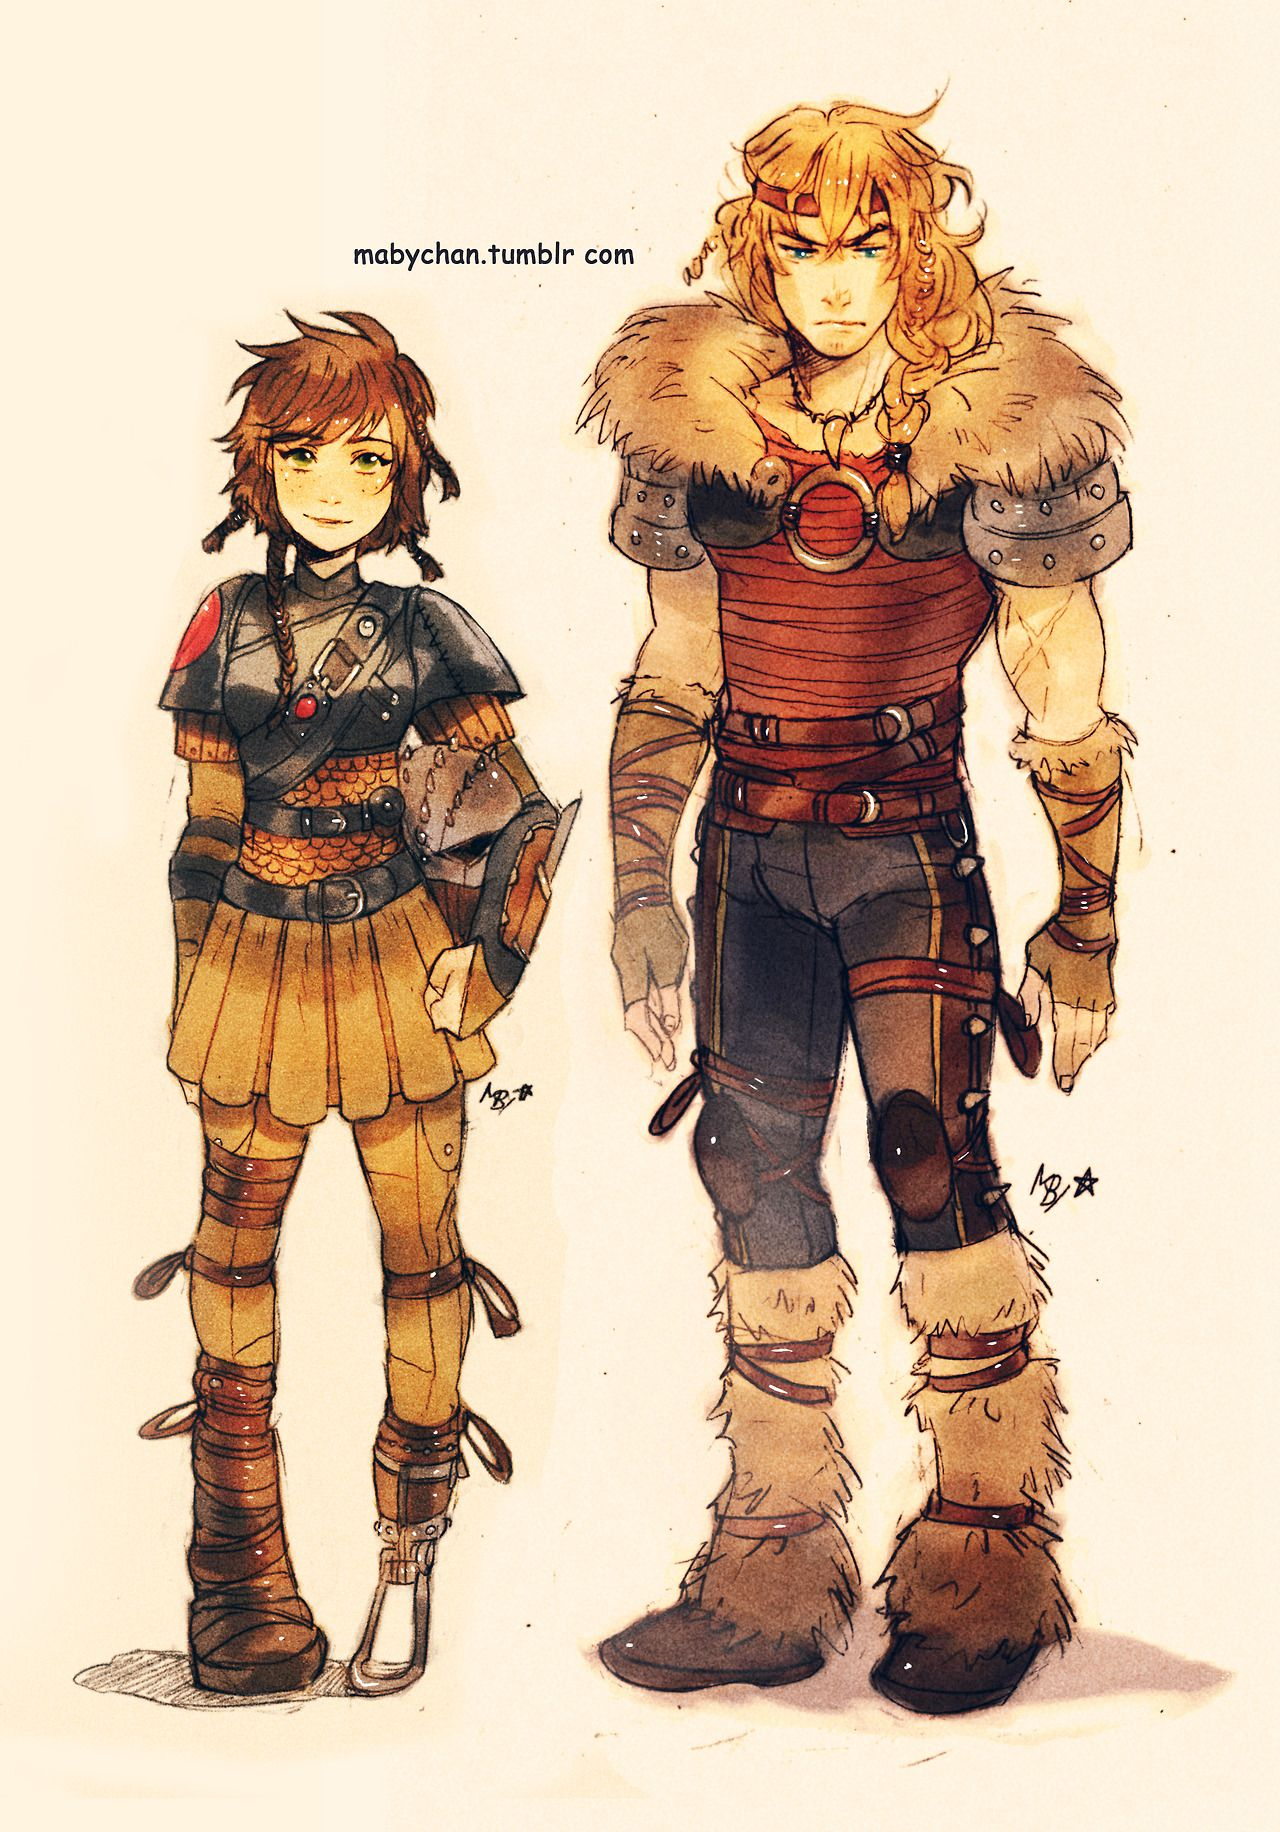 Hiccup And Astrid Genderbend · Hiccup And Astridtrain Your Dragonhttyddreamworksdisney